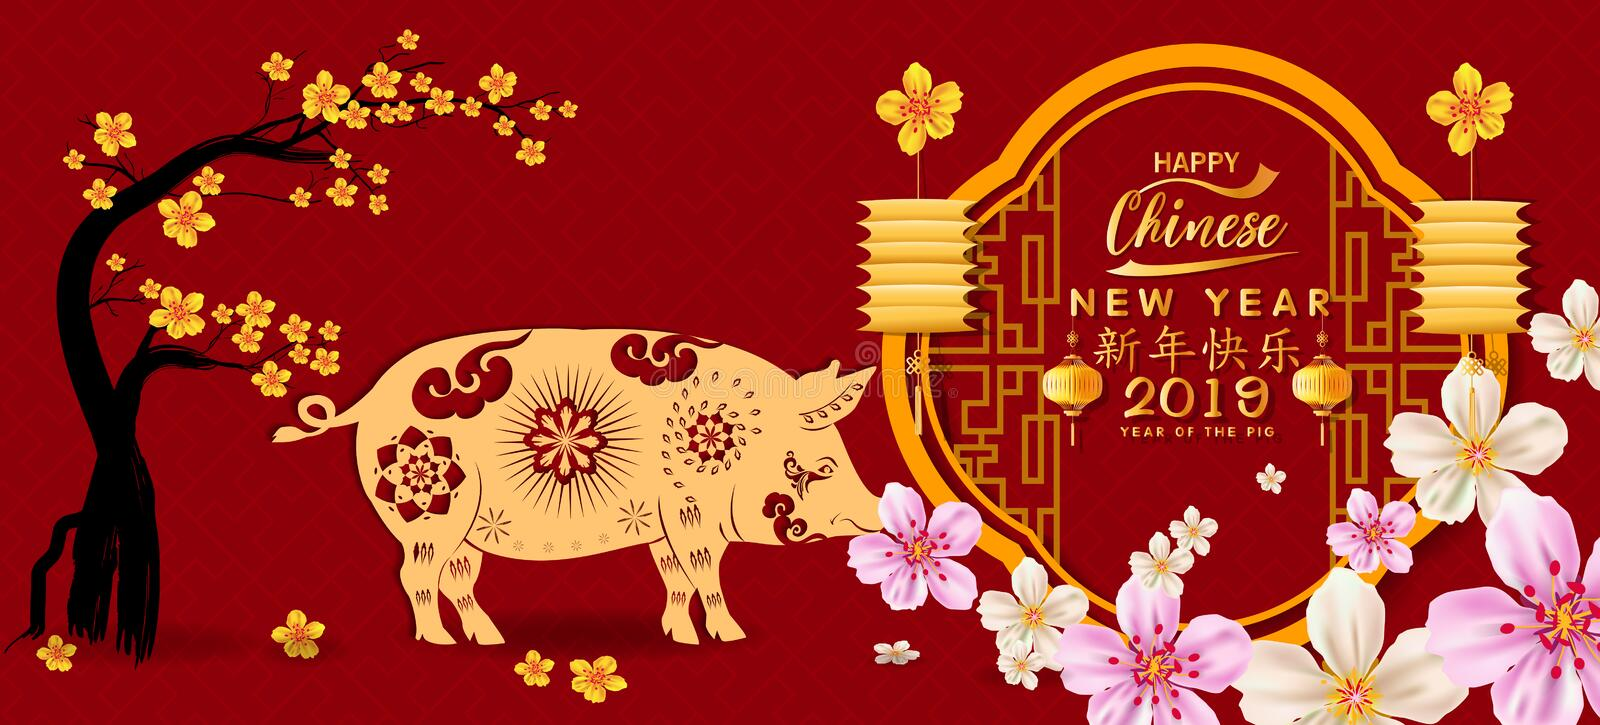 Set Banner Happy Chinese New Year 2019, Year of the Pig. Lunar new year. Chinese characters mean Happy New Year. Happy Chinese New Year 2019, Year of the Pig